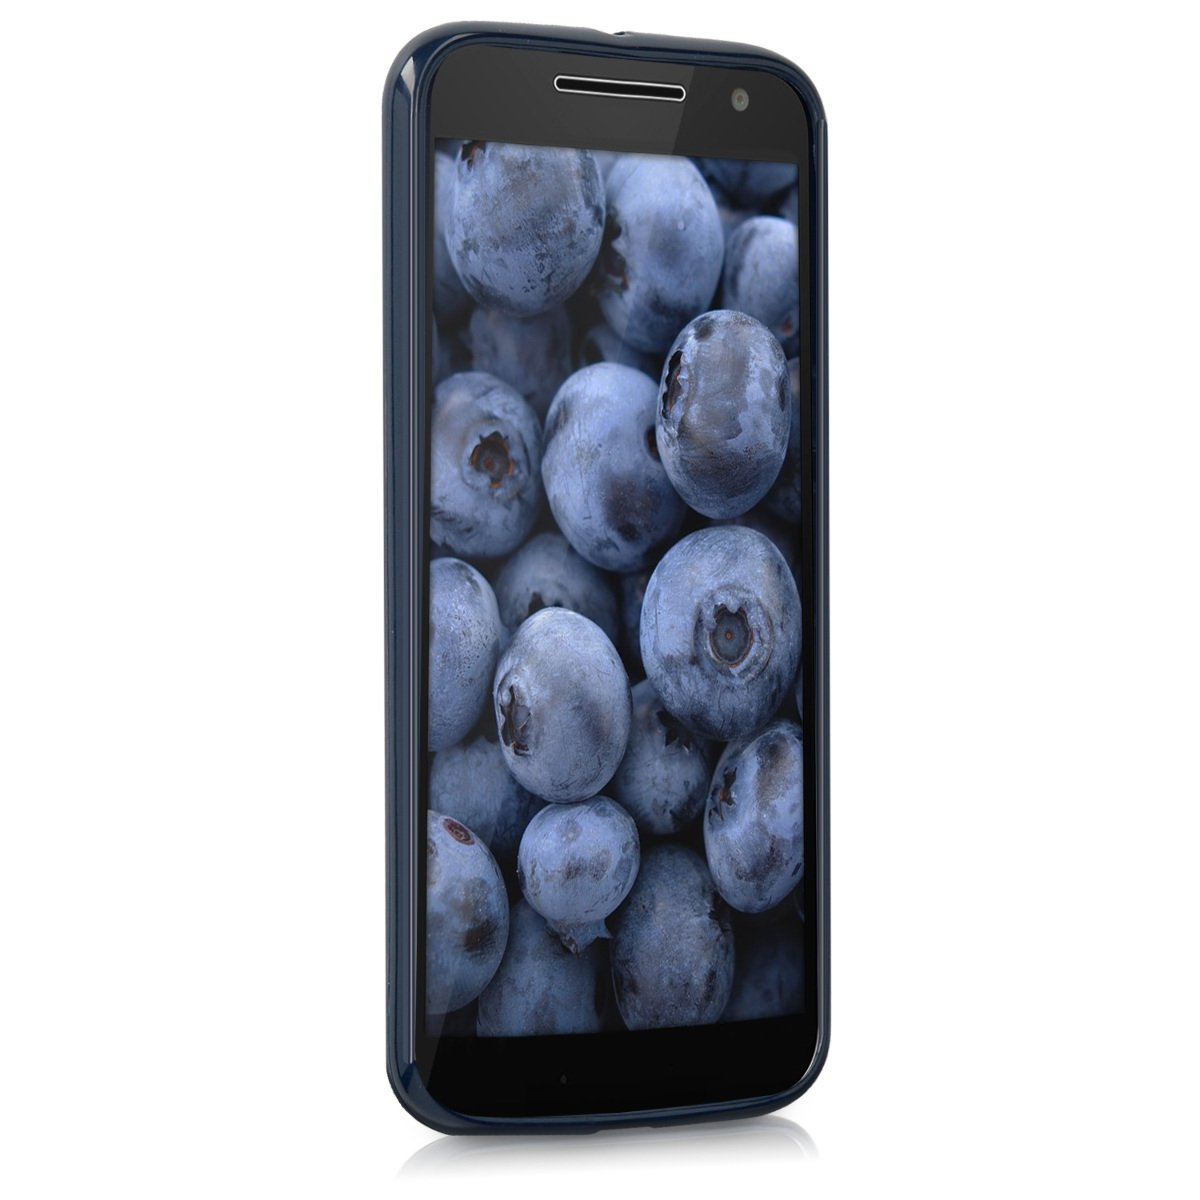 kwmobile TPU Silicone Case for Motorola Moto G4 / Moto G4 Plus - Soft Flexible Shock Absorbent Protective Phone Cover - Dark Blue Matte